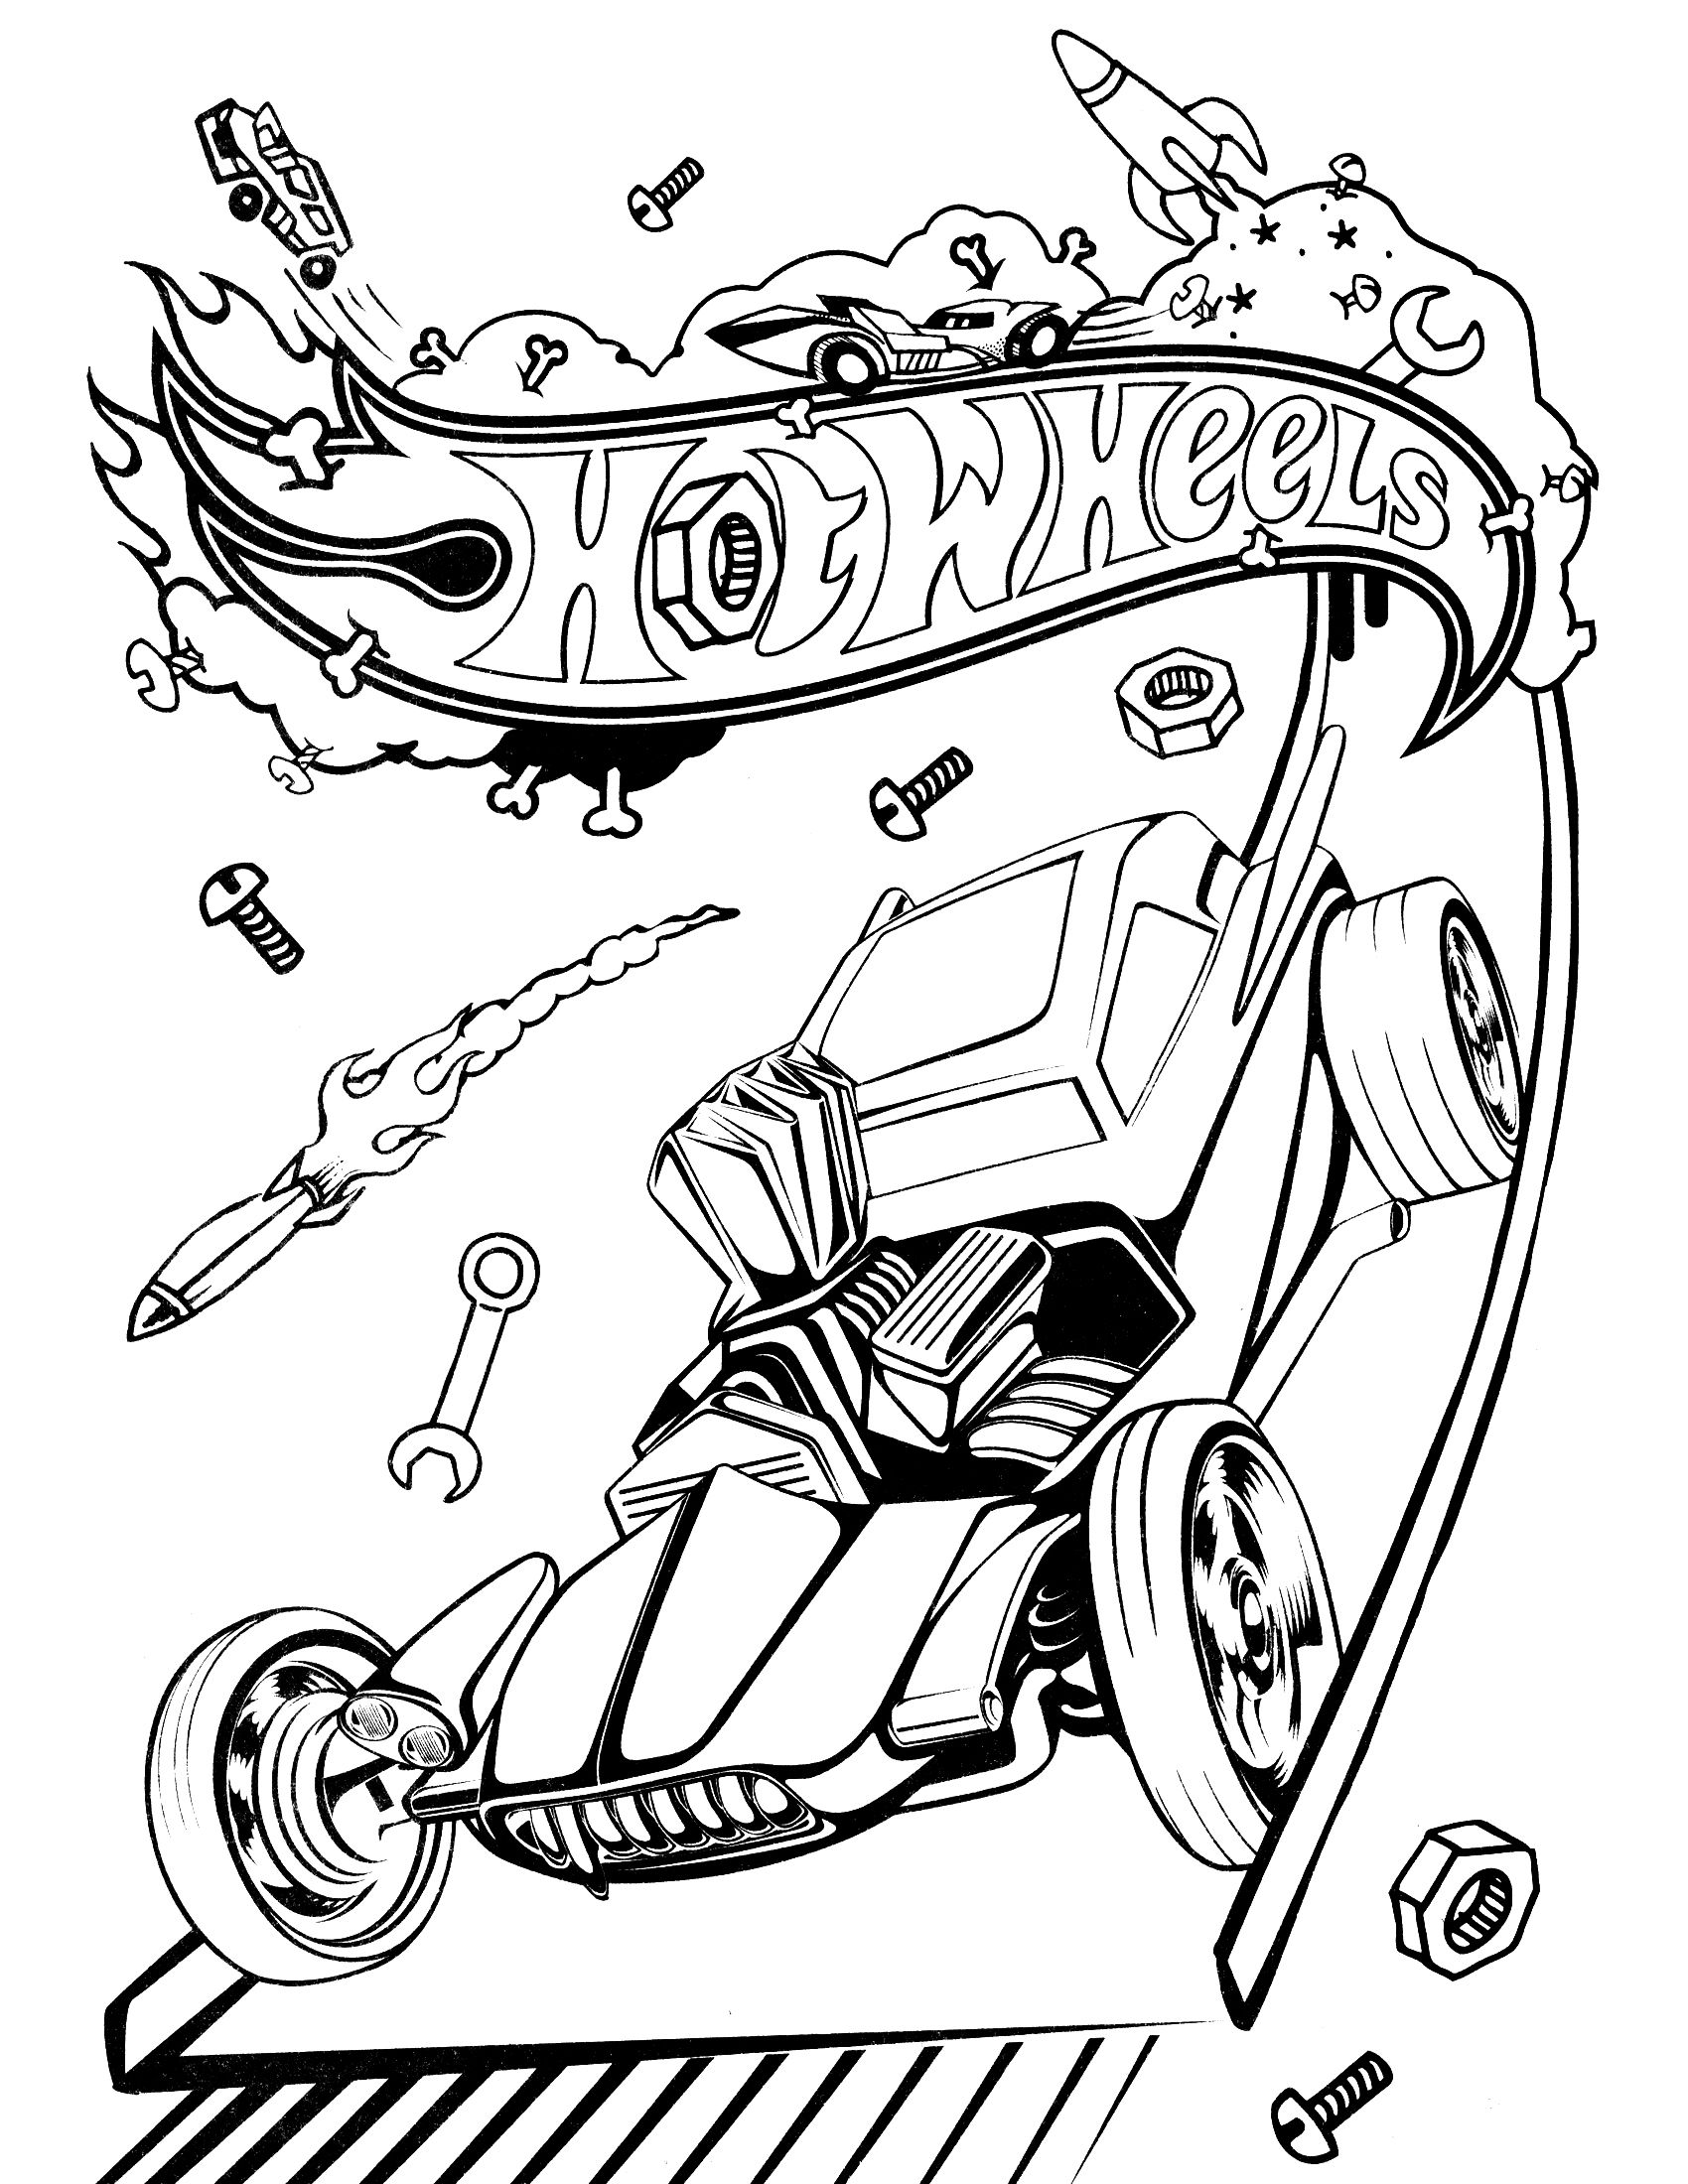 Beau Dessin A Colorier Hot Wheels